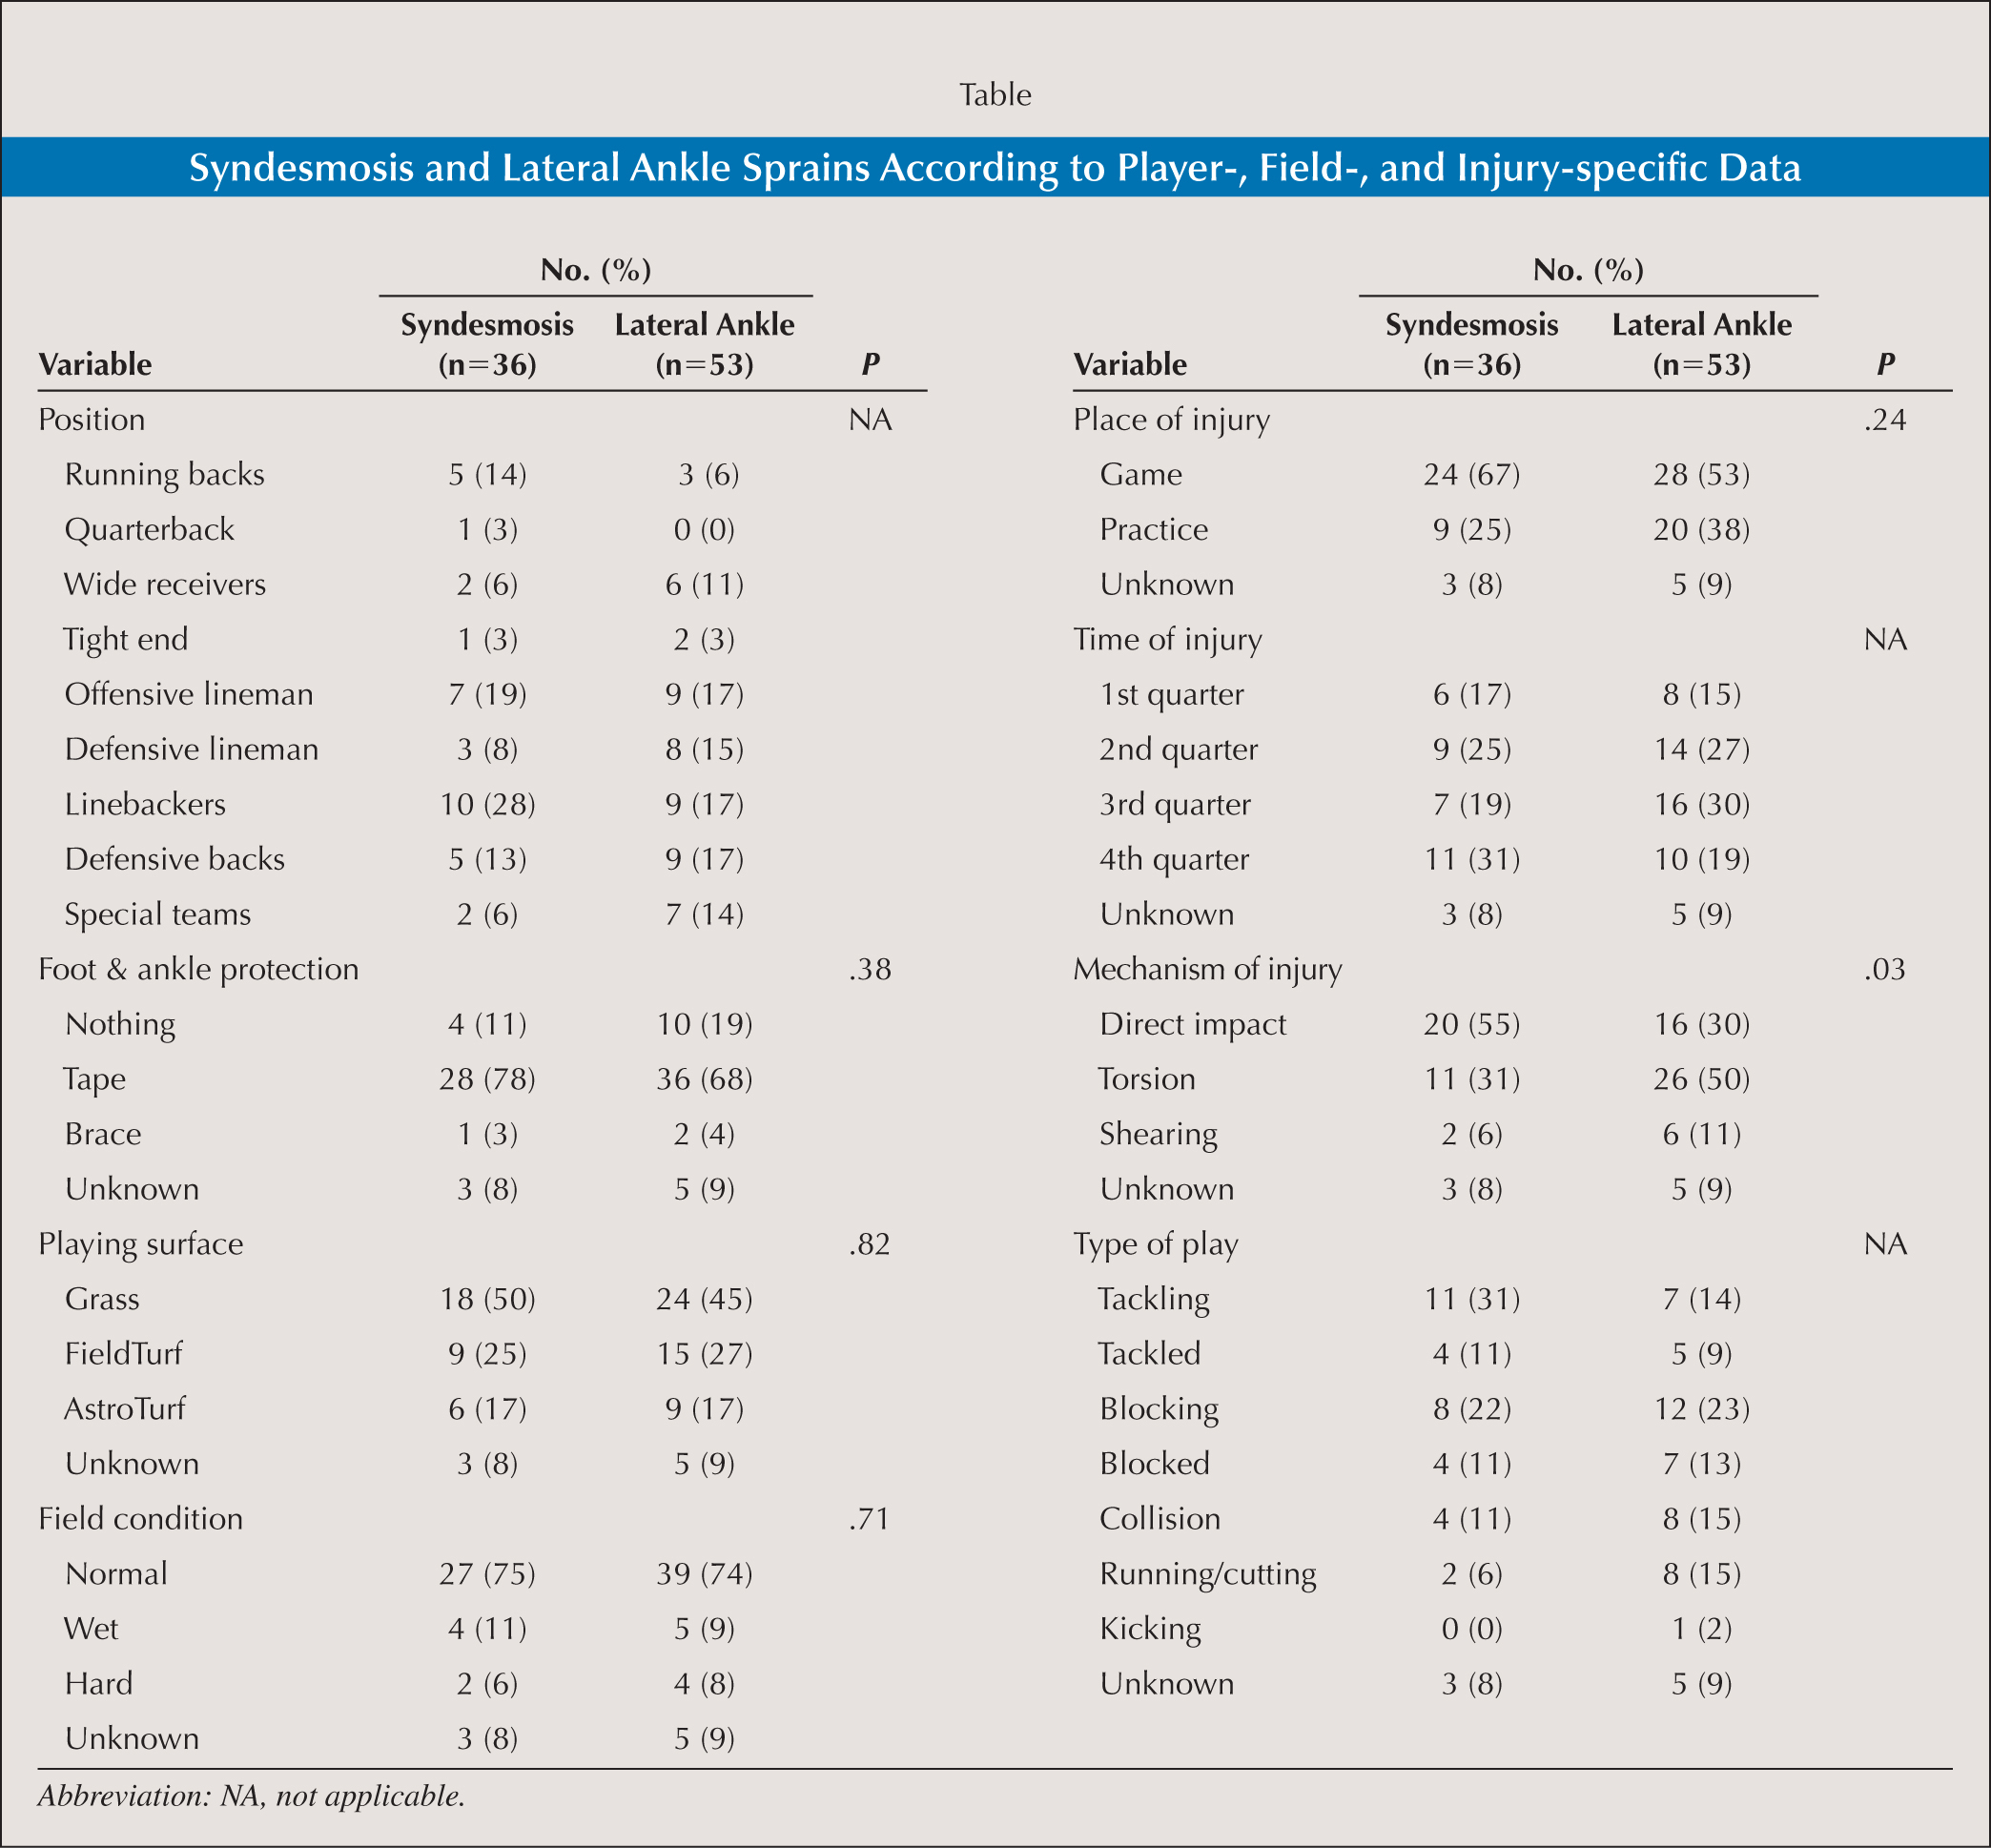 Syndesmosis and Lateral Ankle Sprains According to Player-, Field-, and Injury-specific Data